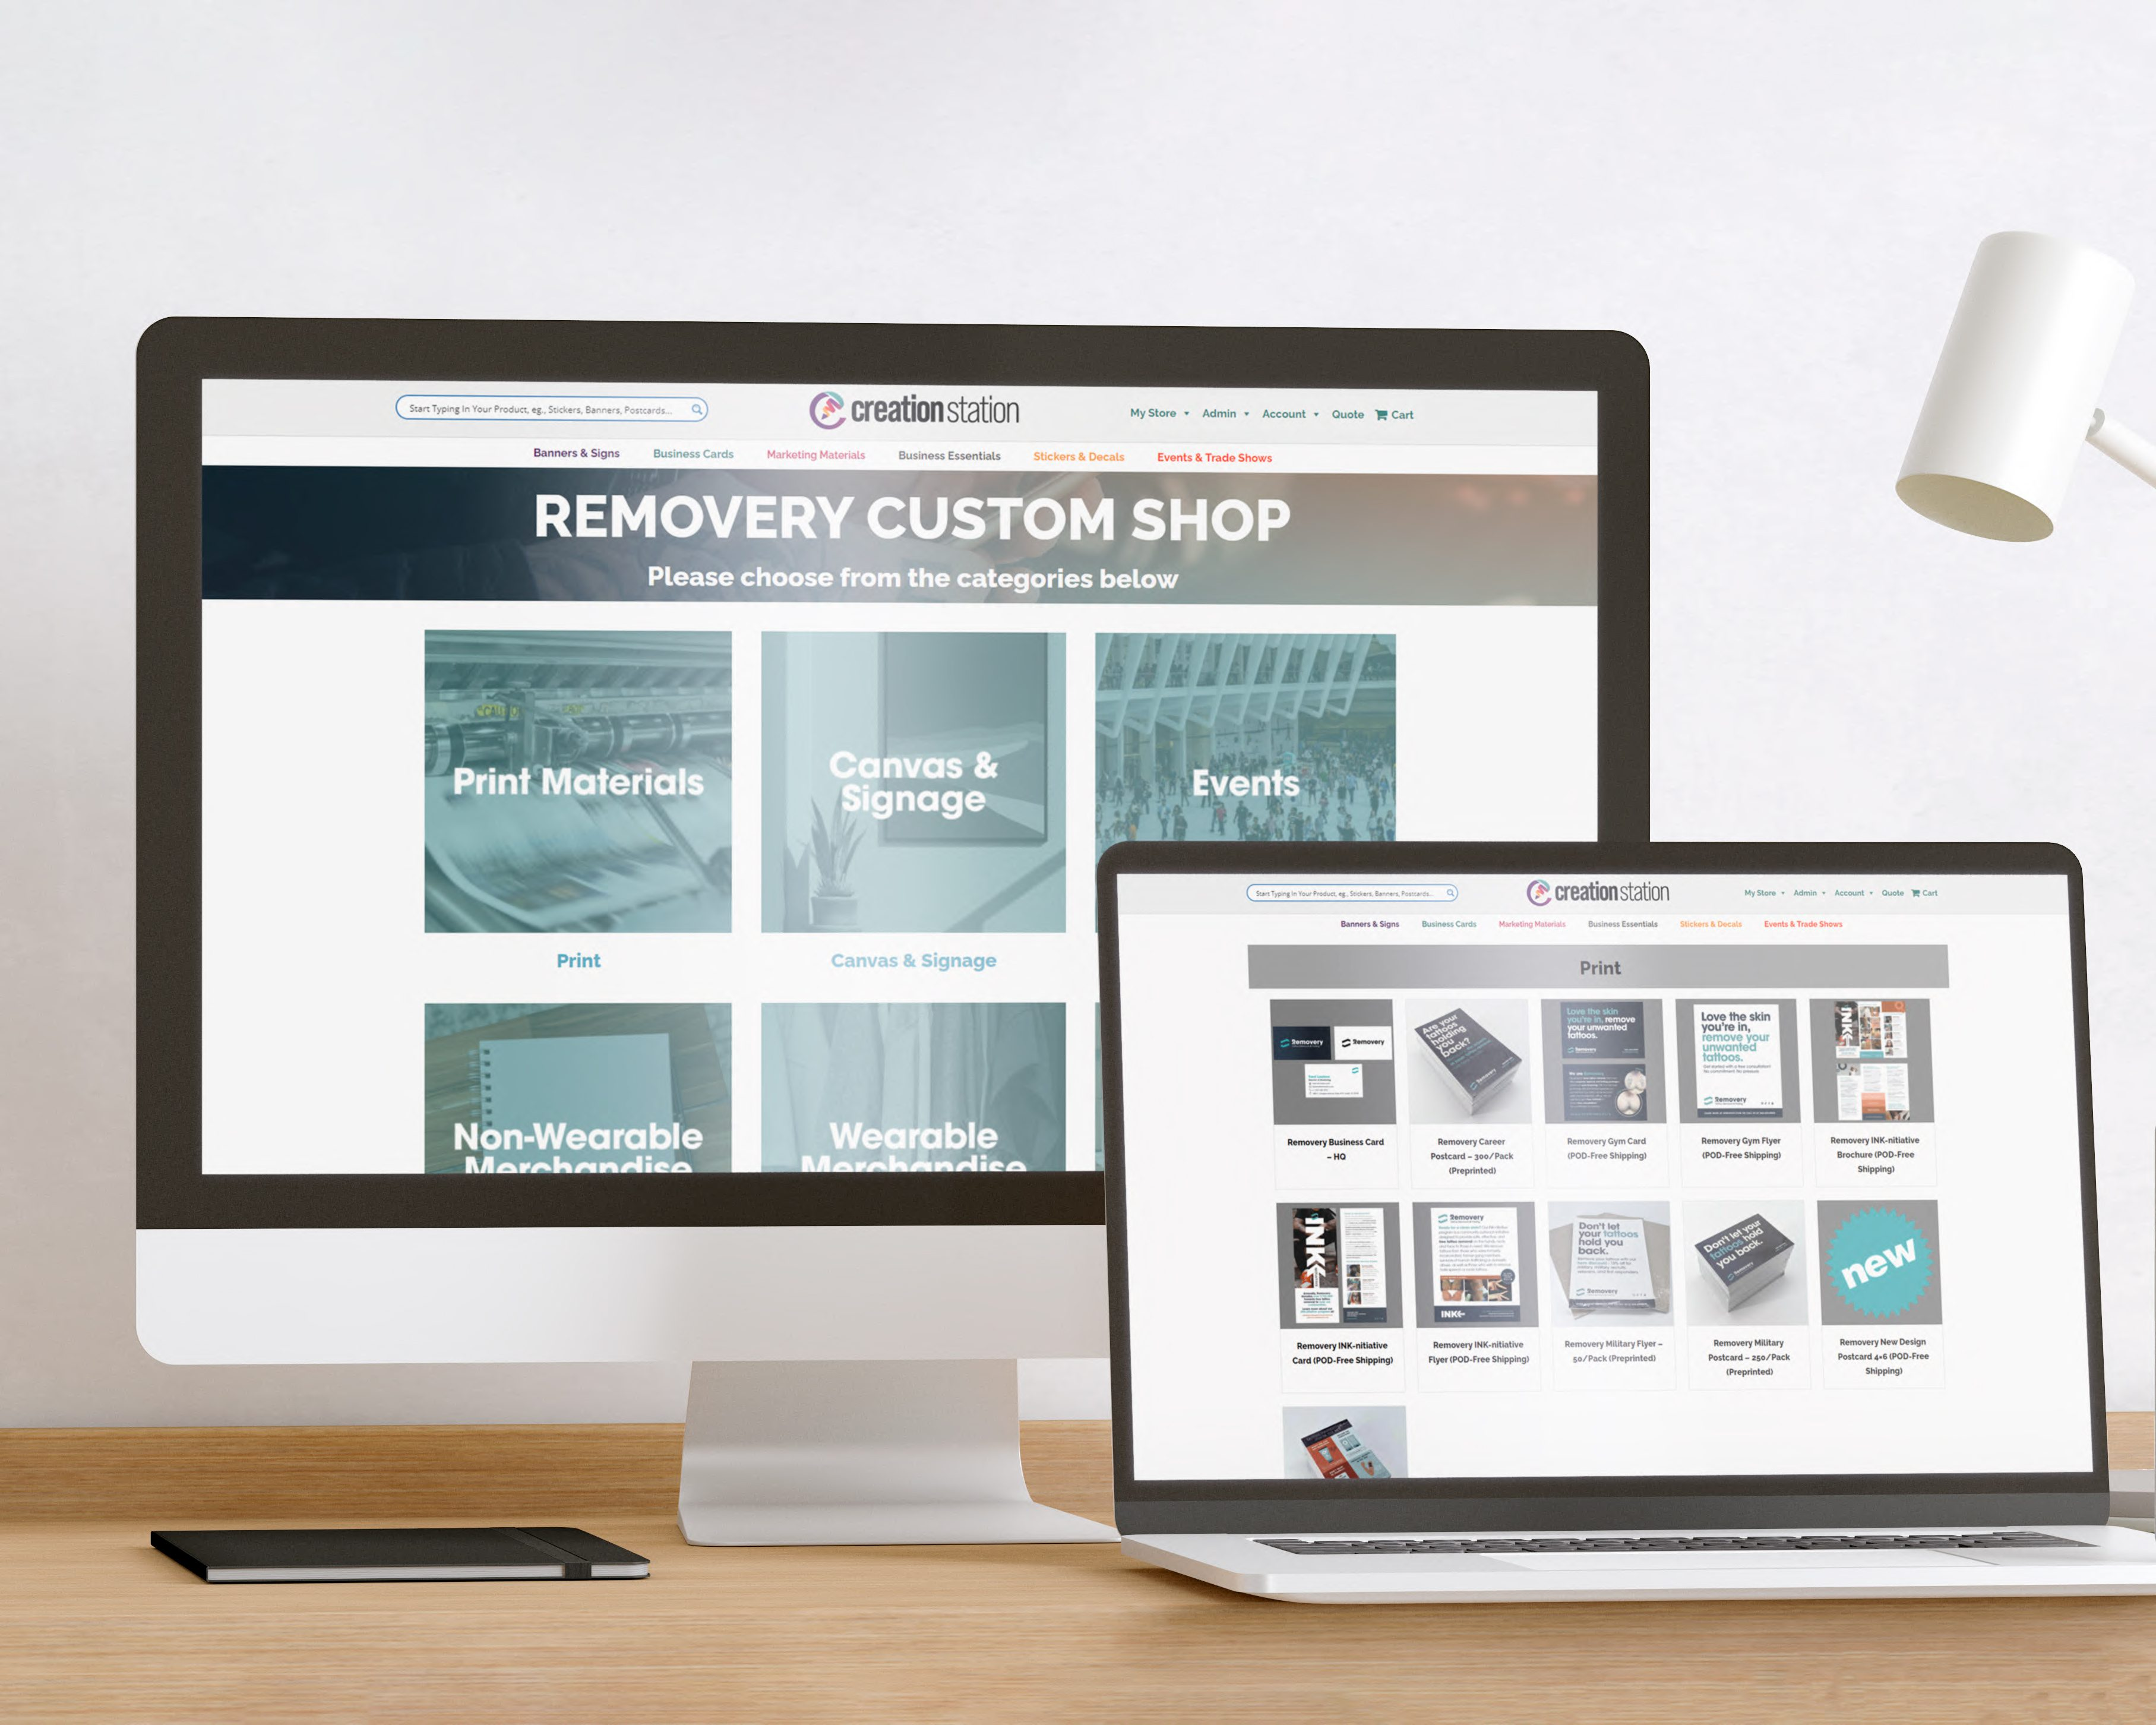 removery_updated_custom shop